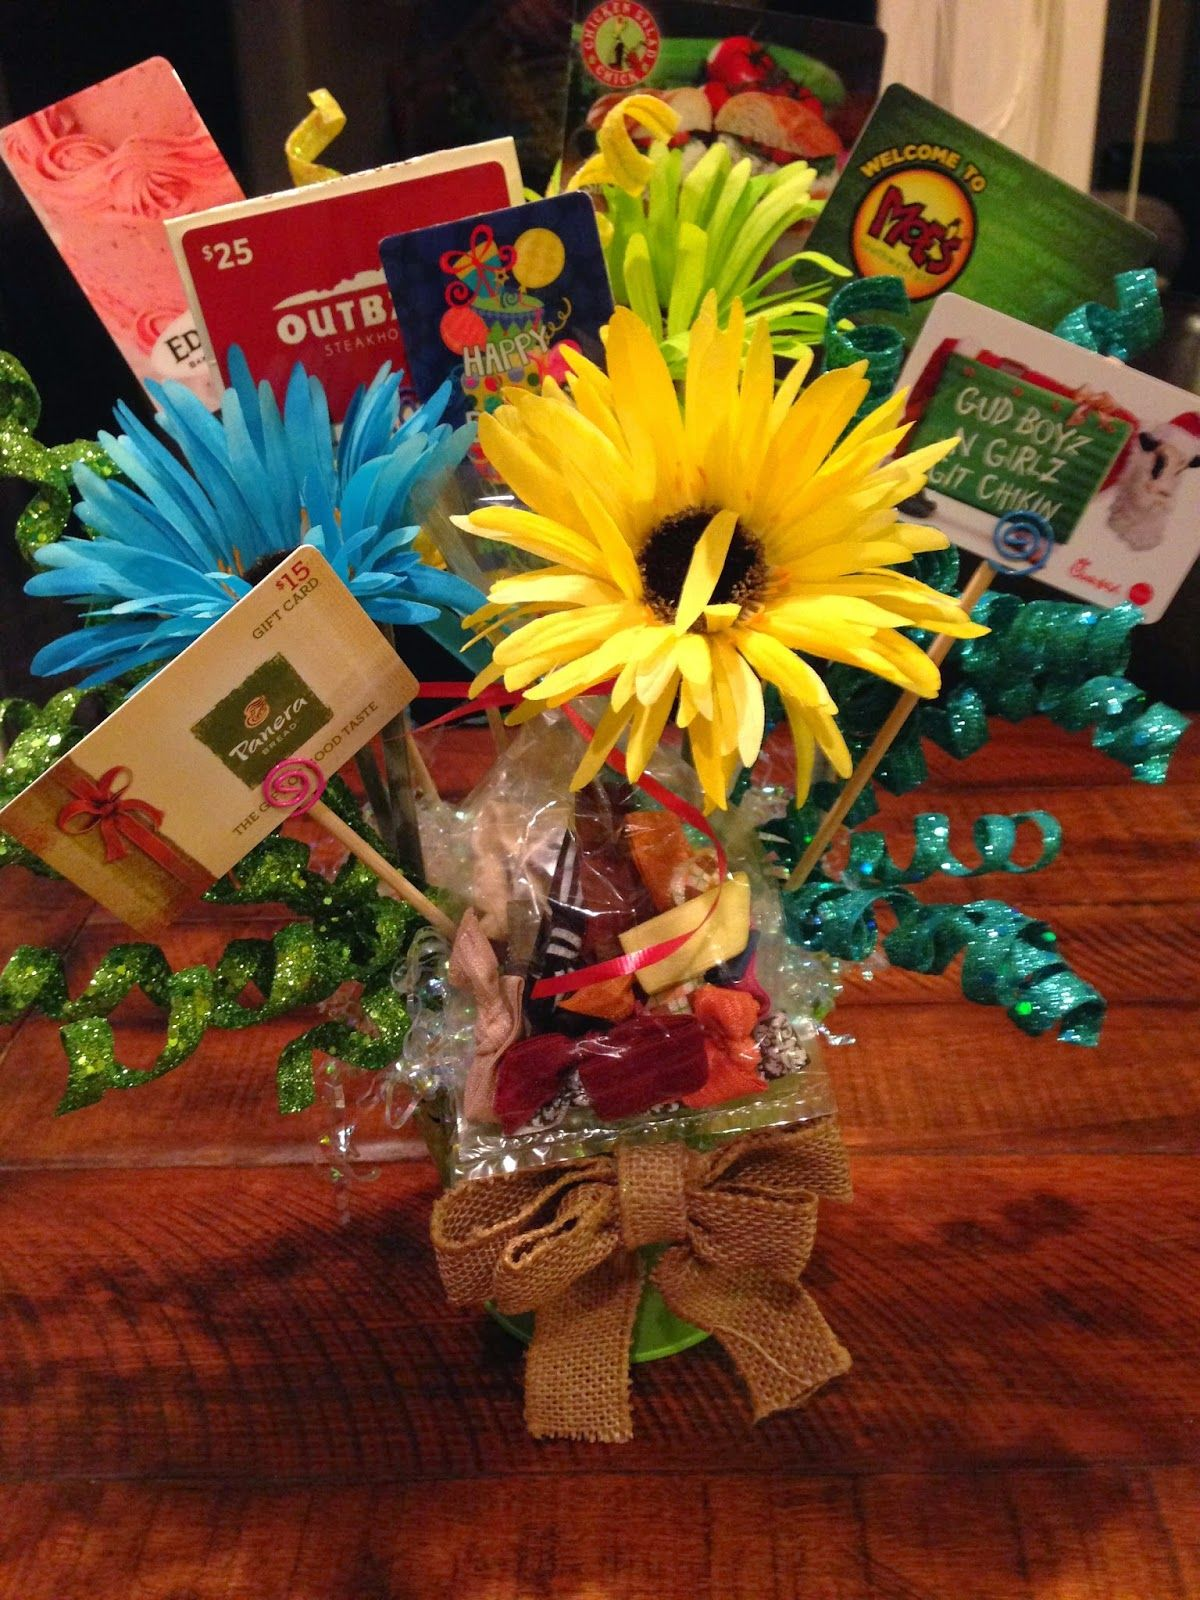 Creative Ways to Give Gift Cards Gift cards can be an easy choice ...